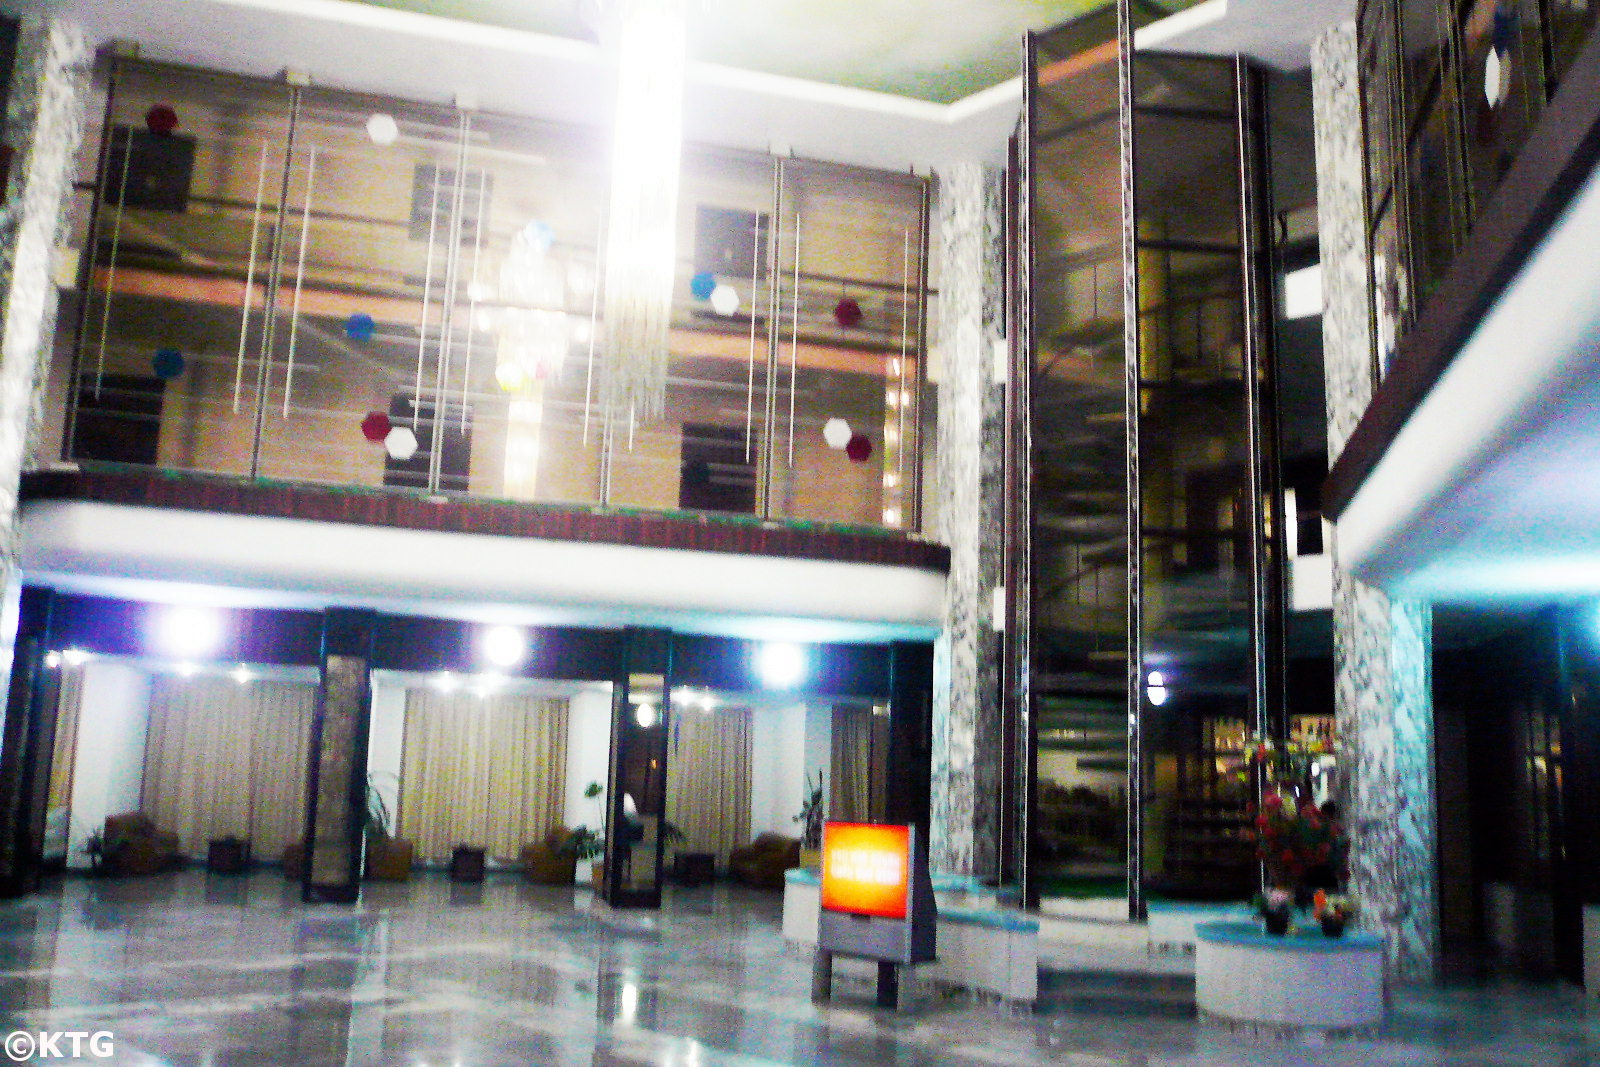 Lobby of the Tongmyong Hotel in Wonsan city, Kangwon province, North Korea (DPRK). Trip arranged by KTG Tours